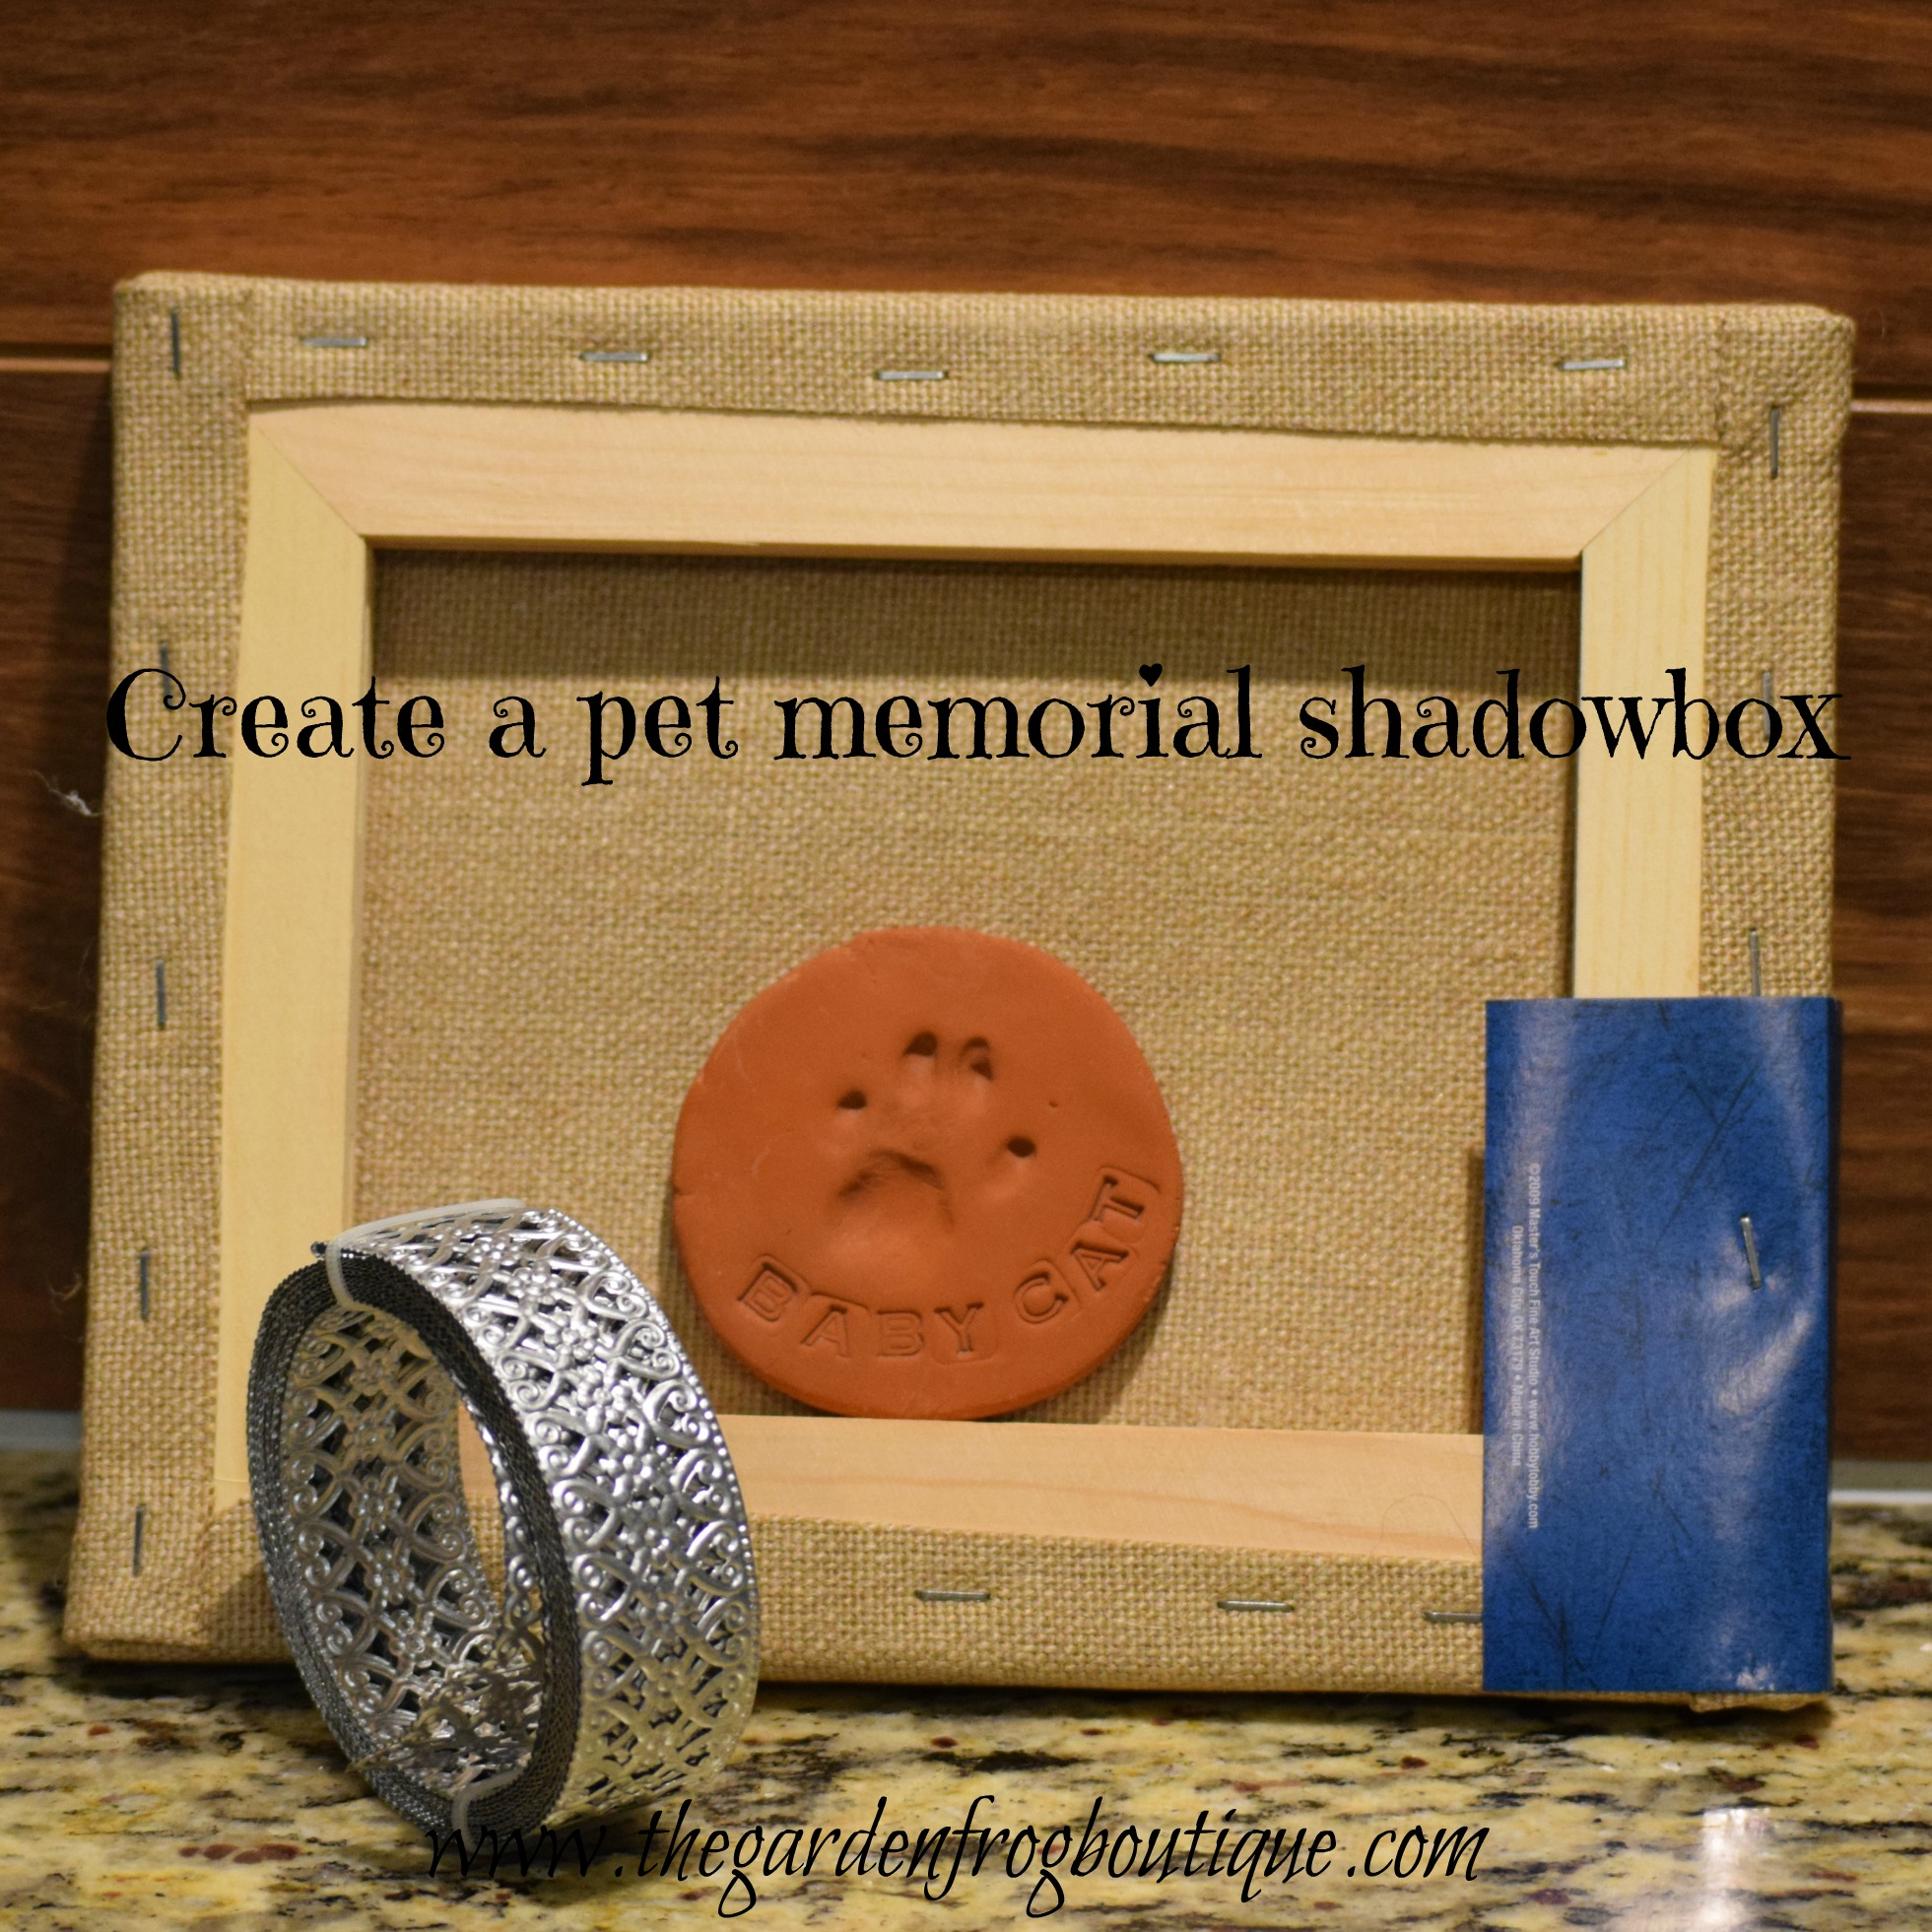 How to Create a Picture Memorial